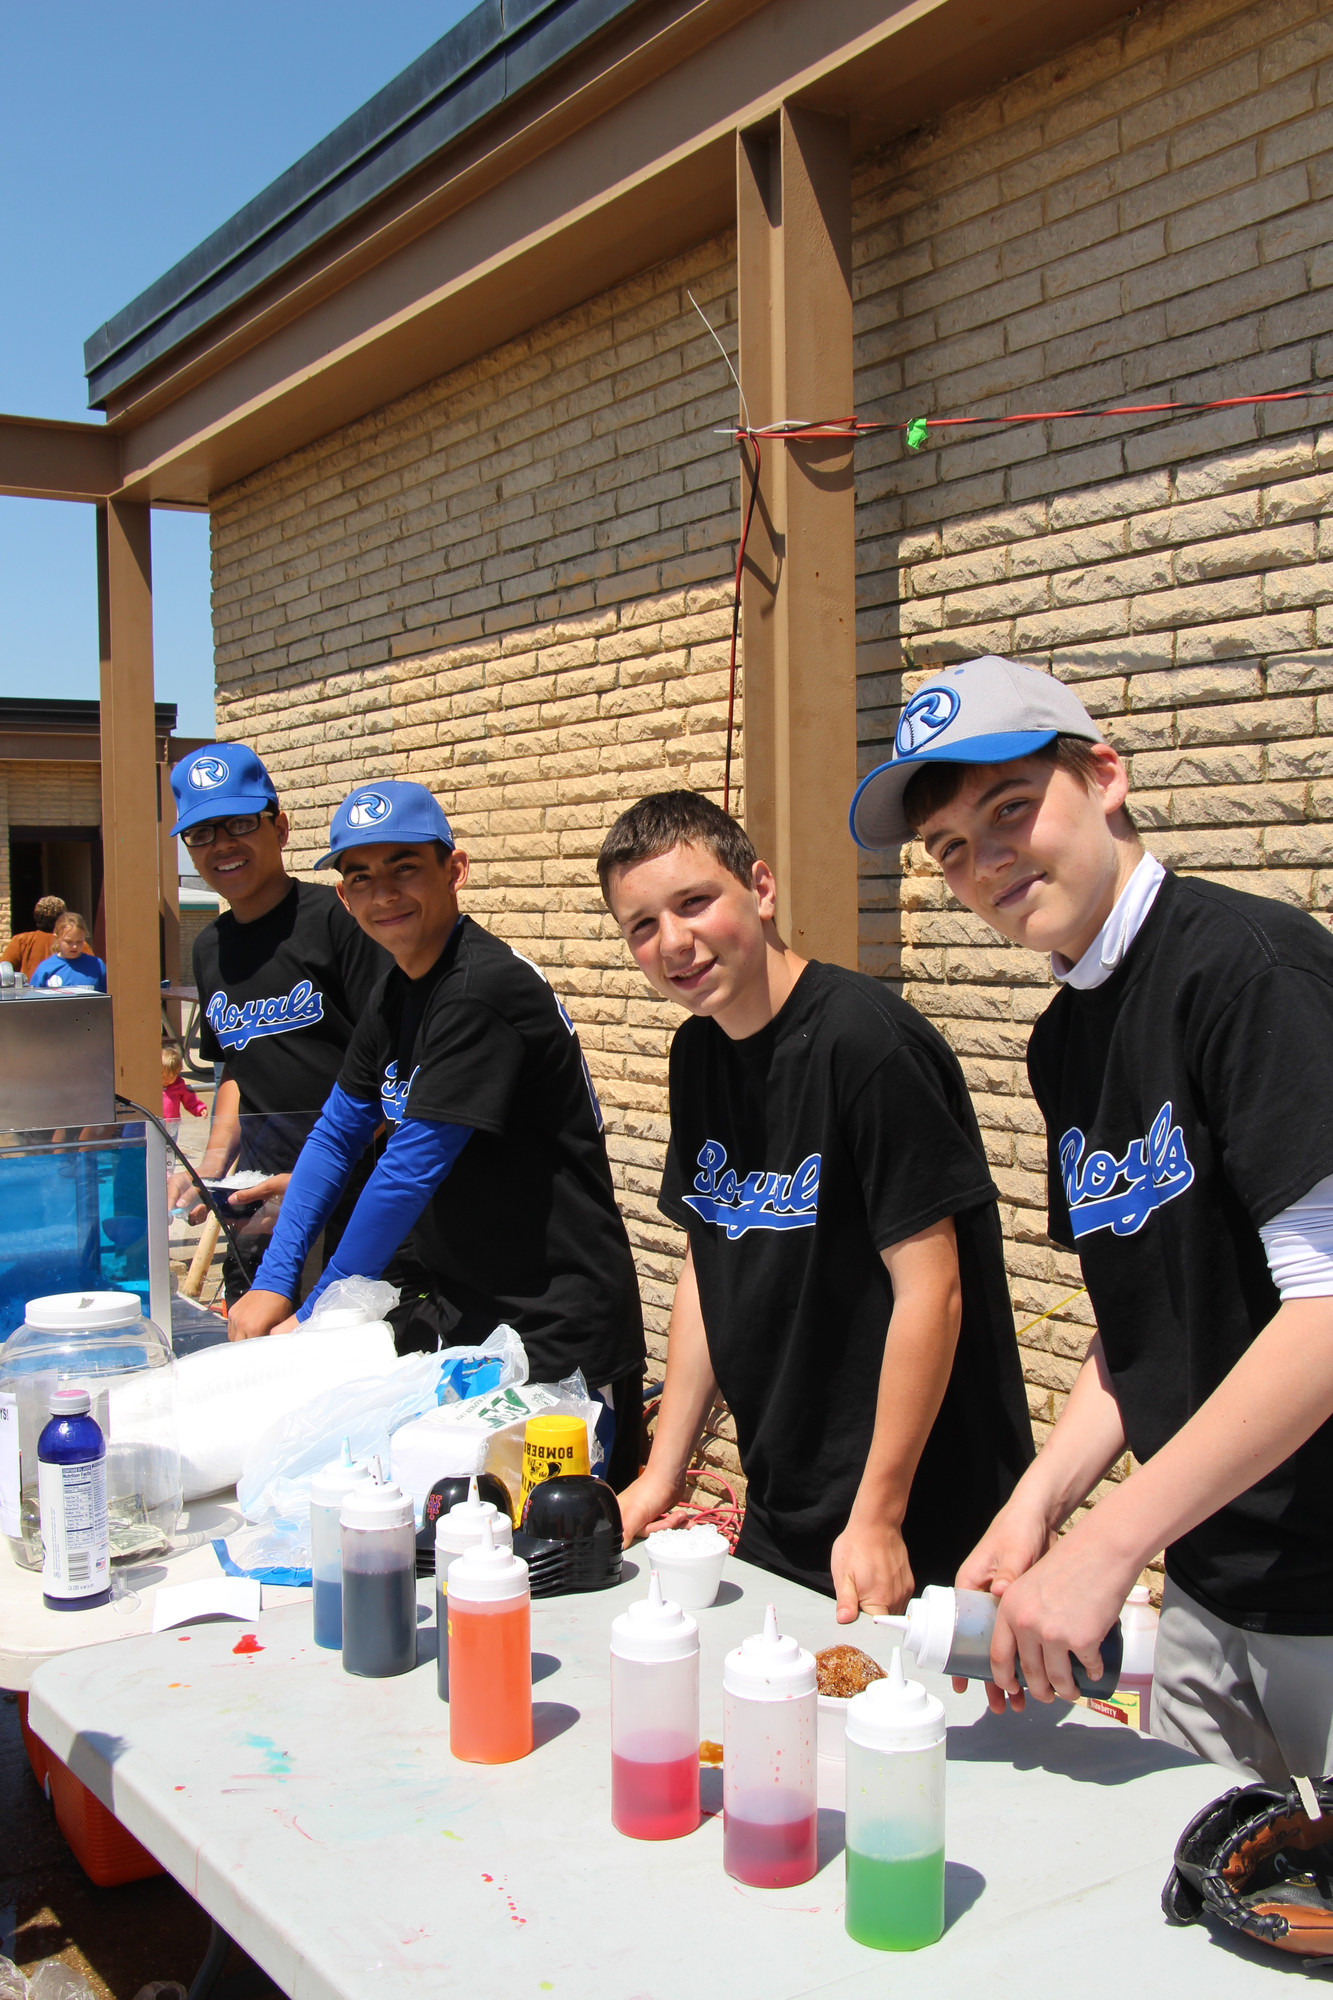 The Royals helped out with some refreshments.From left are Lino Peralta, 15,  Walter Argueta, 14, Christopher Moro, 14, and  Wally Melvin, 14.